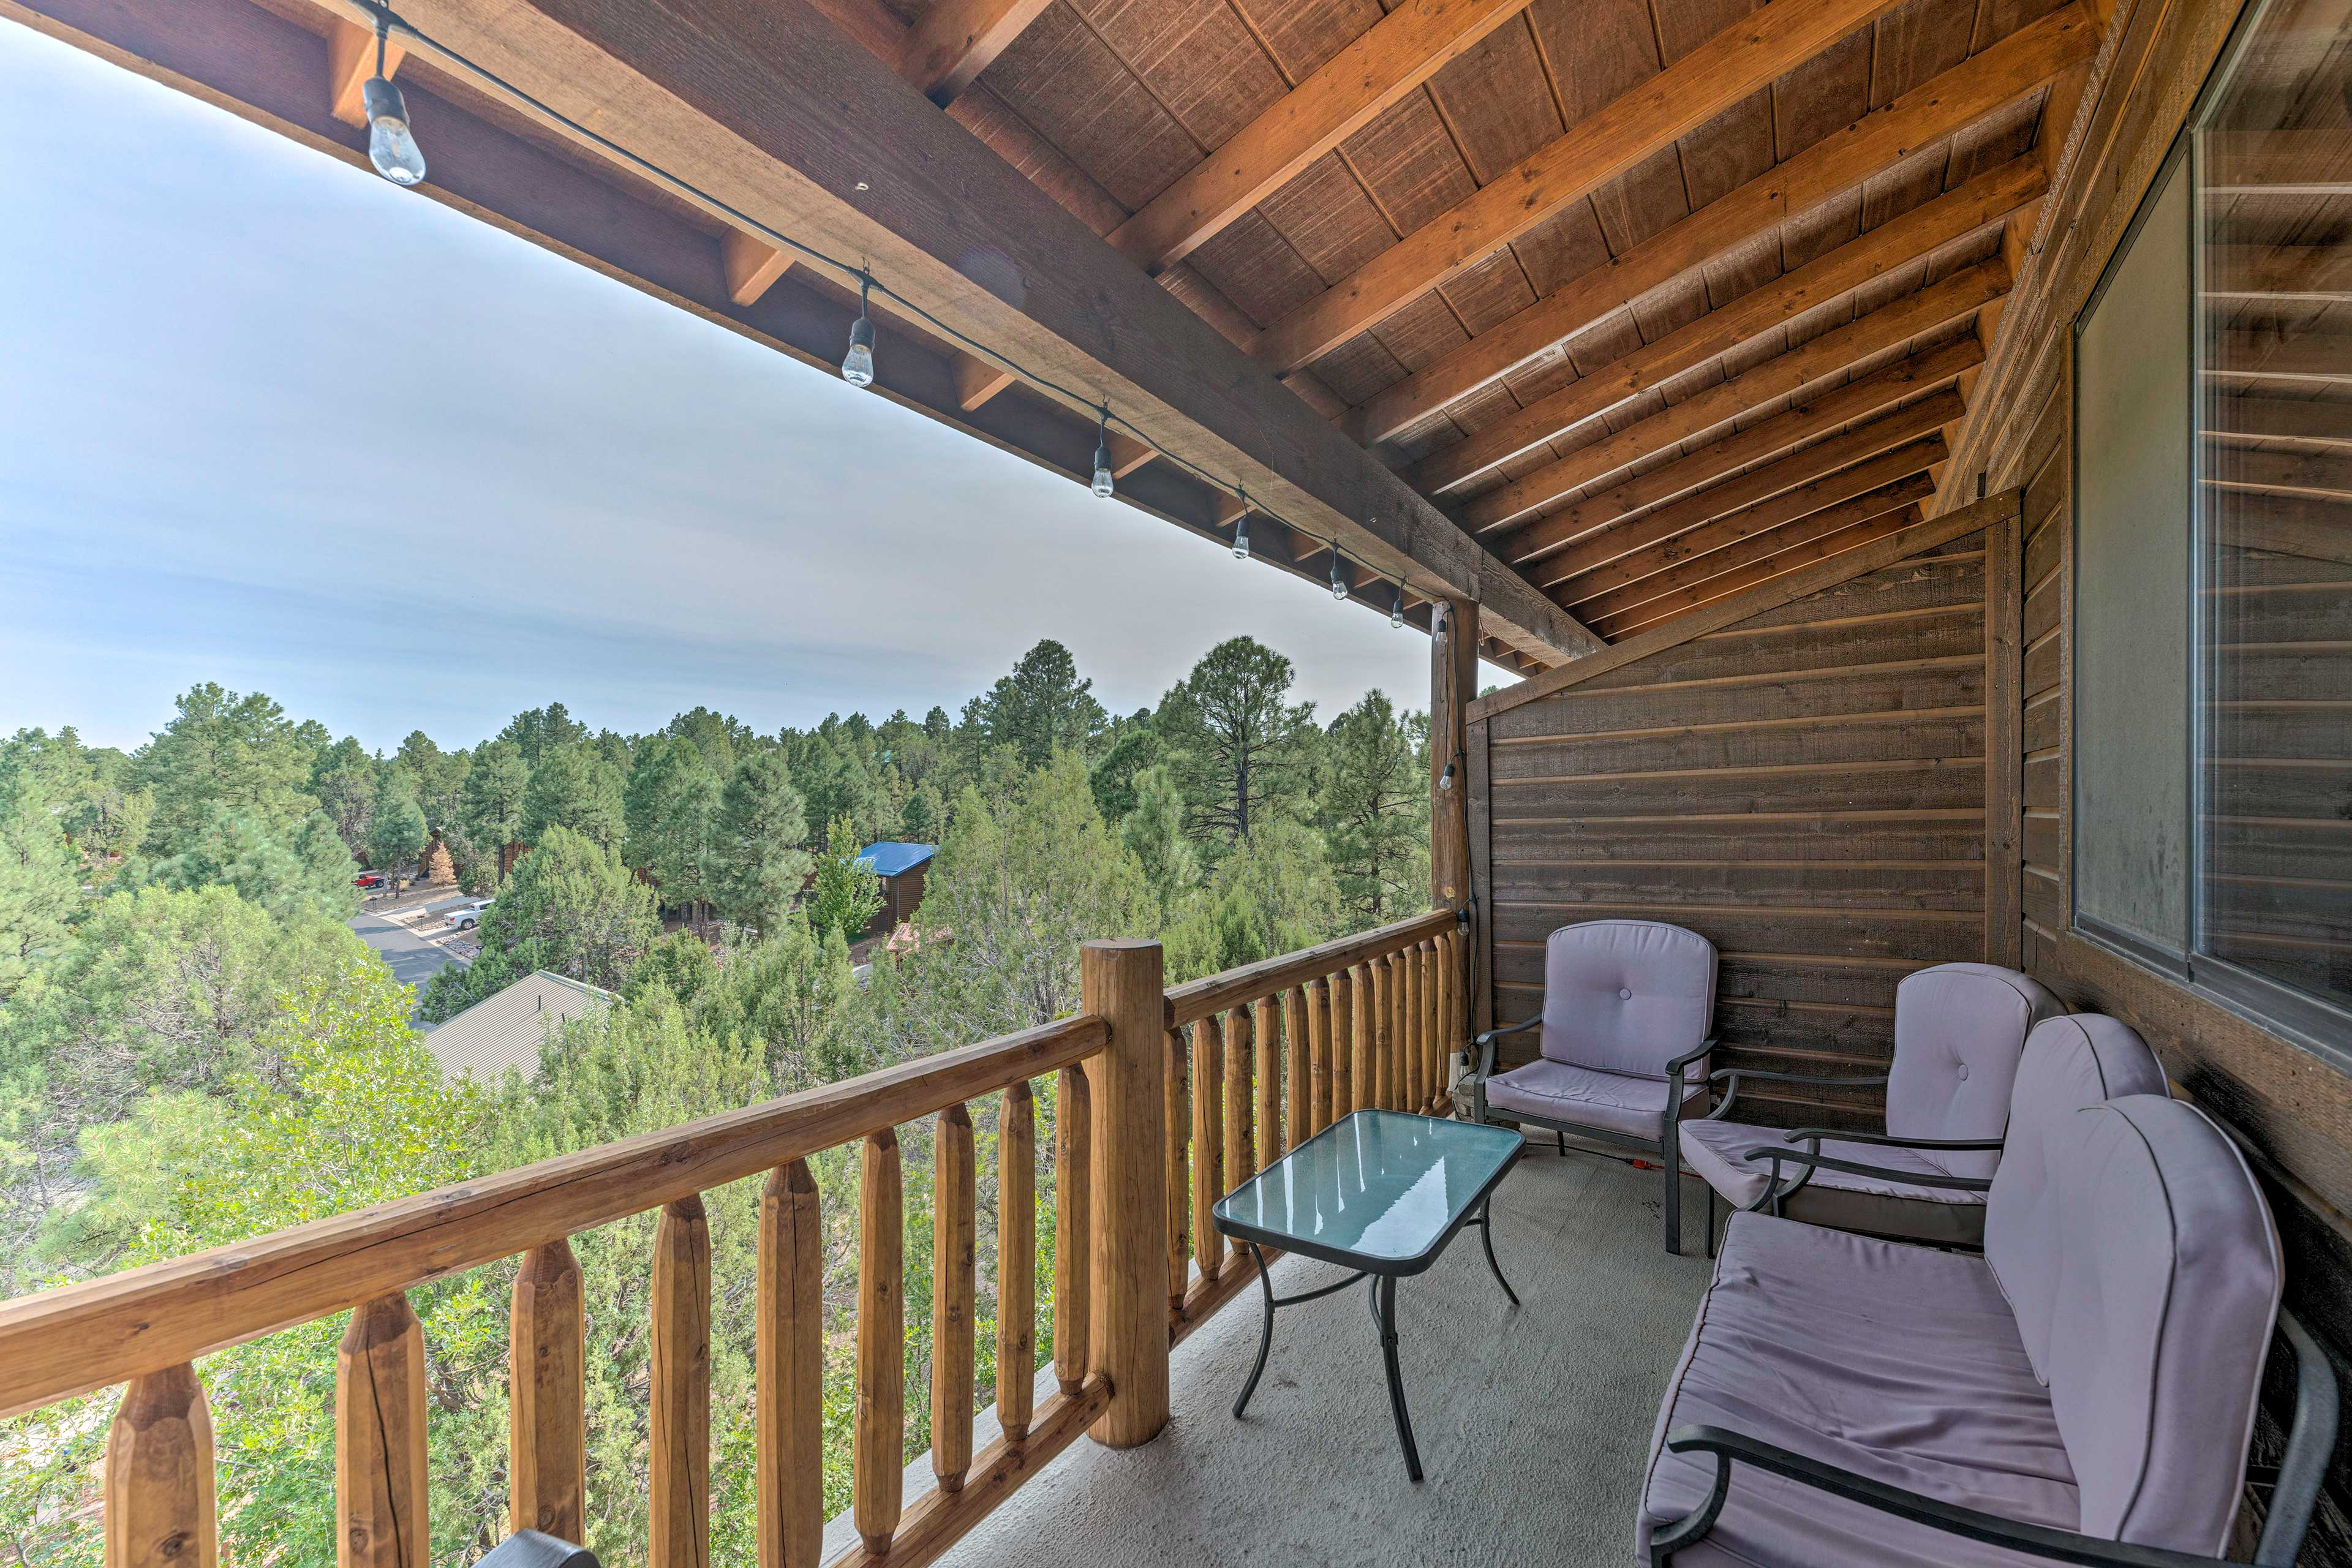 The furnished patio is a great spot to read, chat, or simply enjoy fresh air.